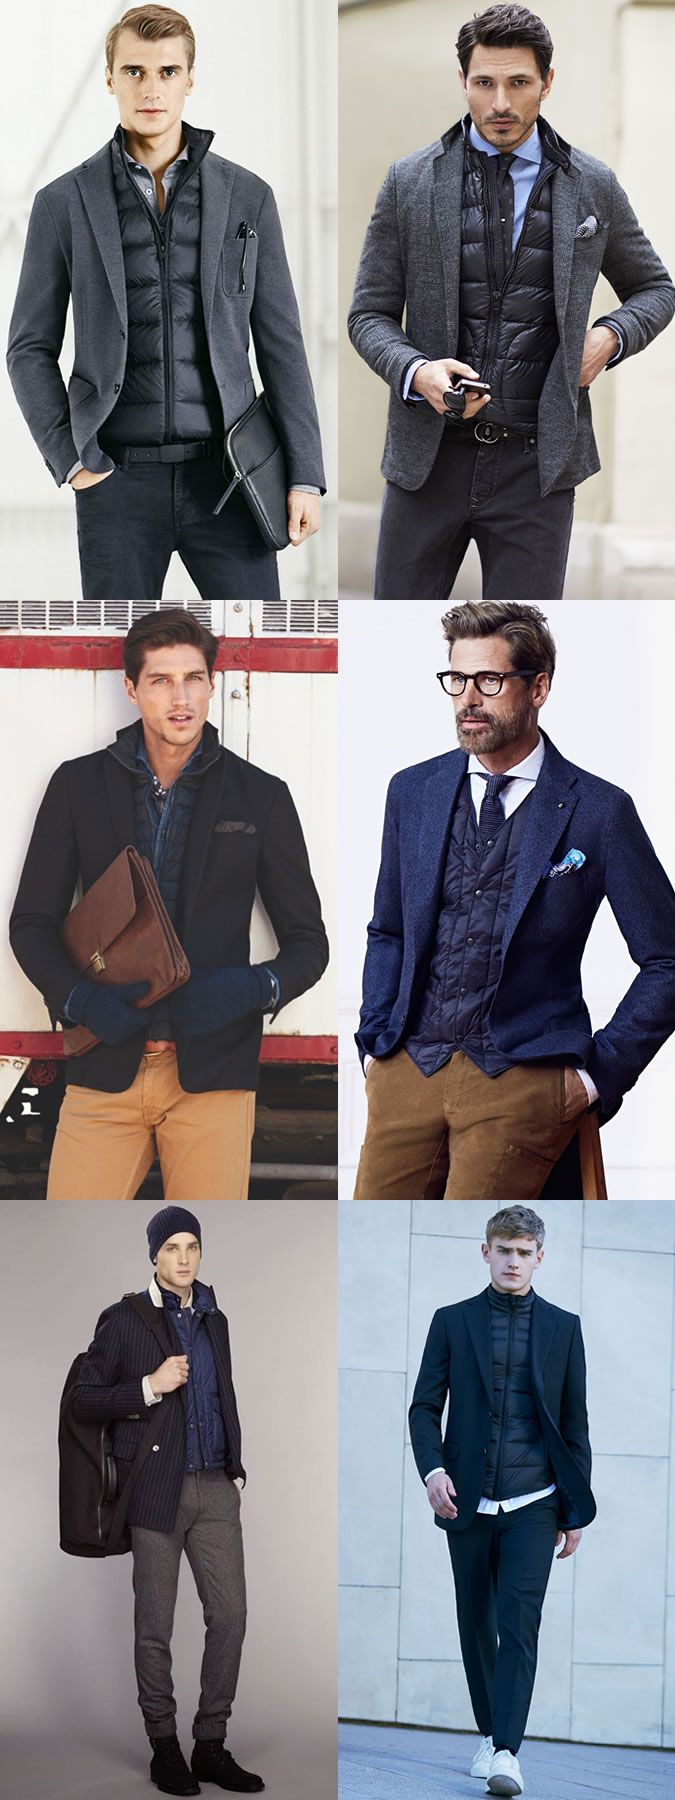 business casual men winter photo - 1